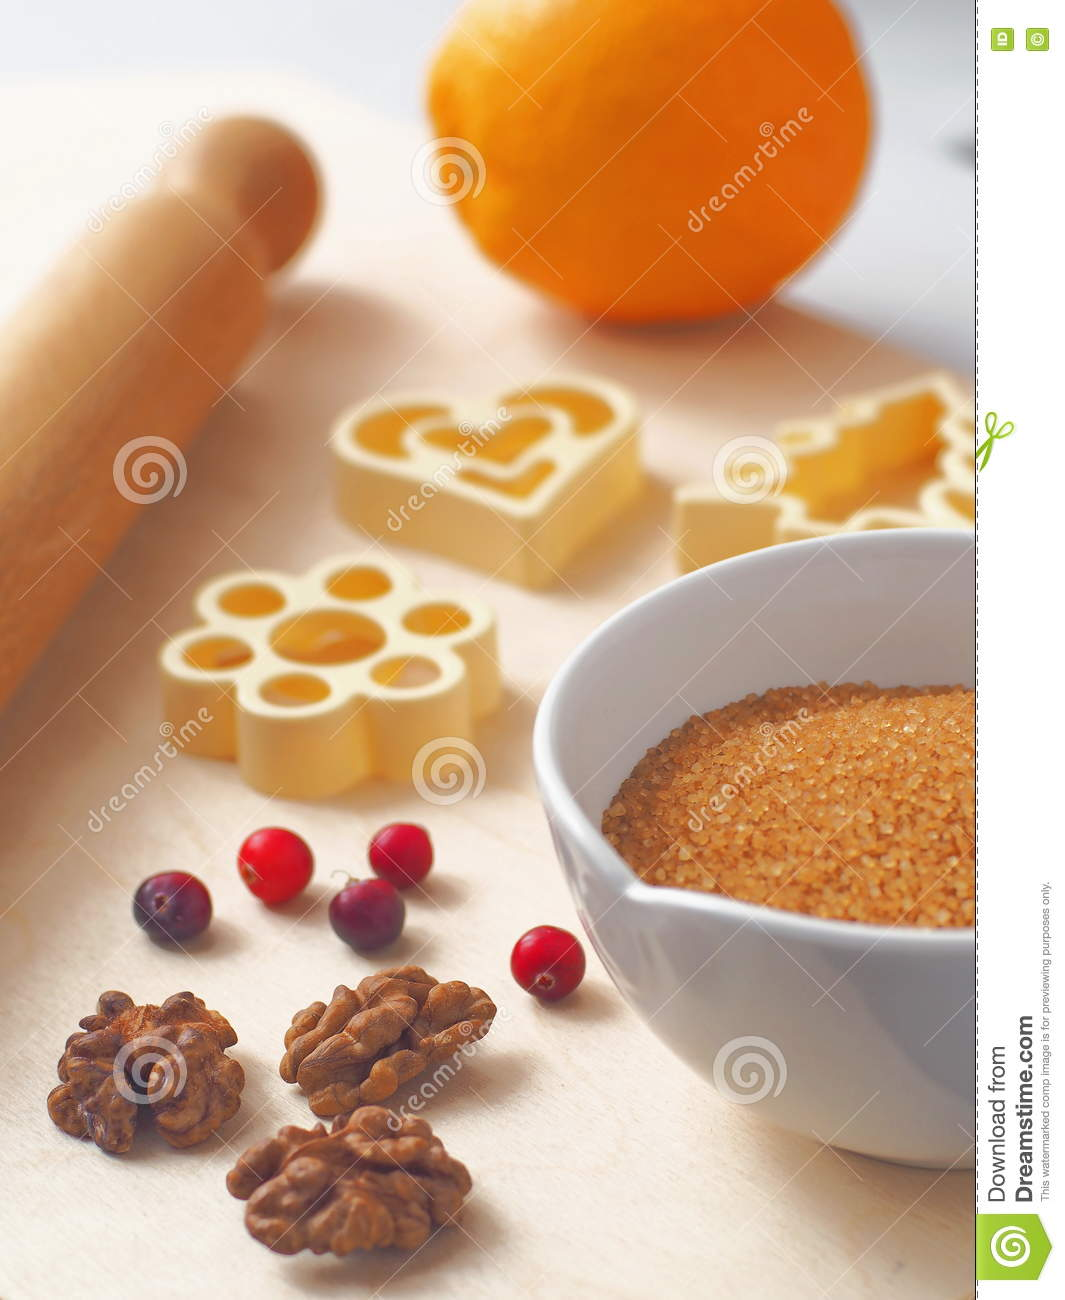 Cooking process. Components for preparing Christmas cookies or cake with some utensils on a table.